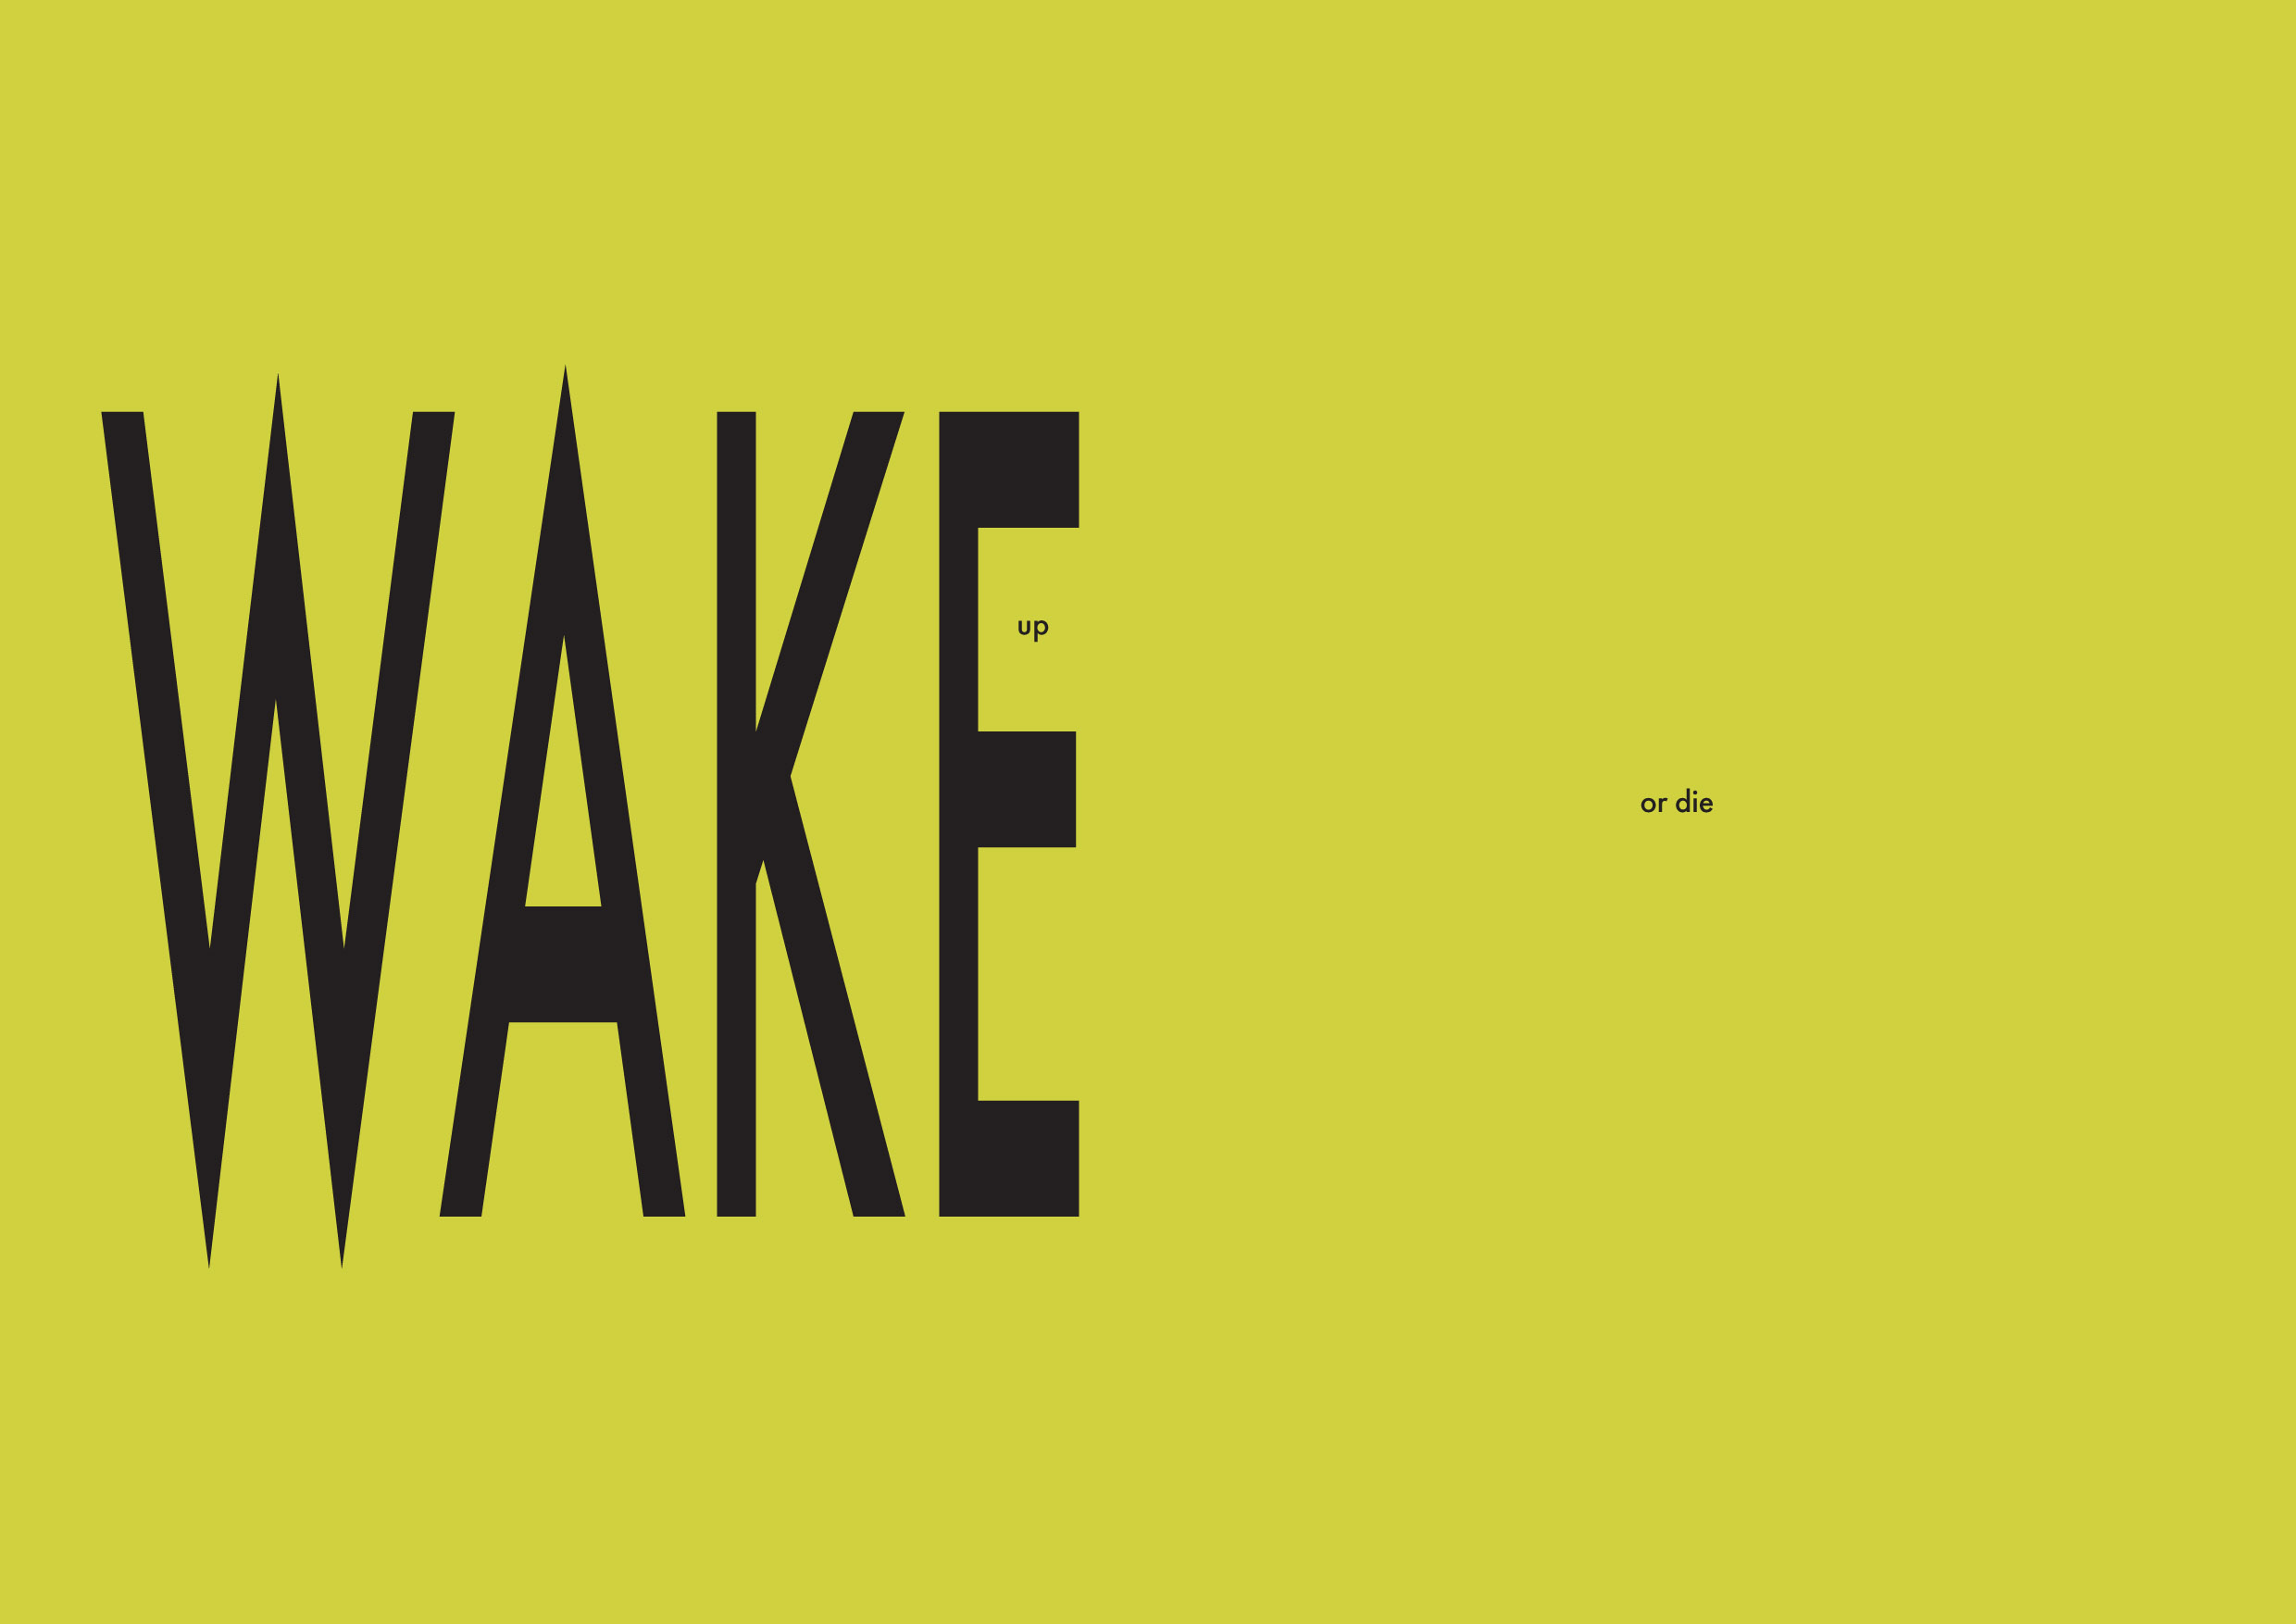 amvisual.net wakeup or die a3.jpg